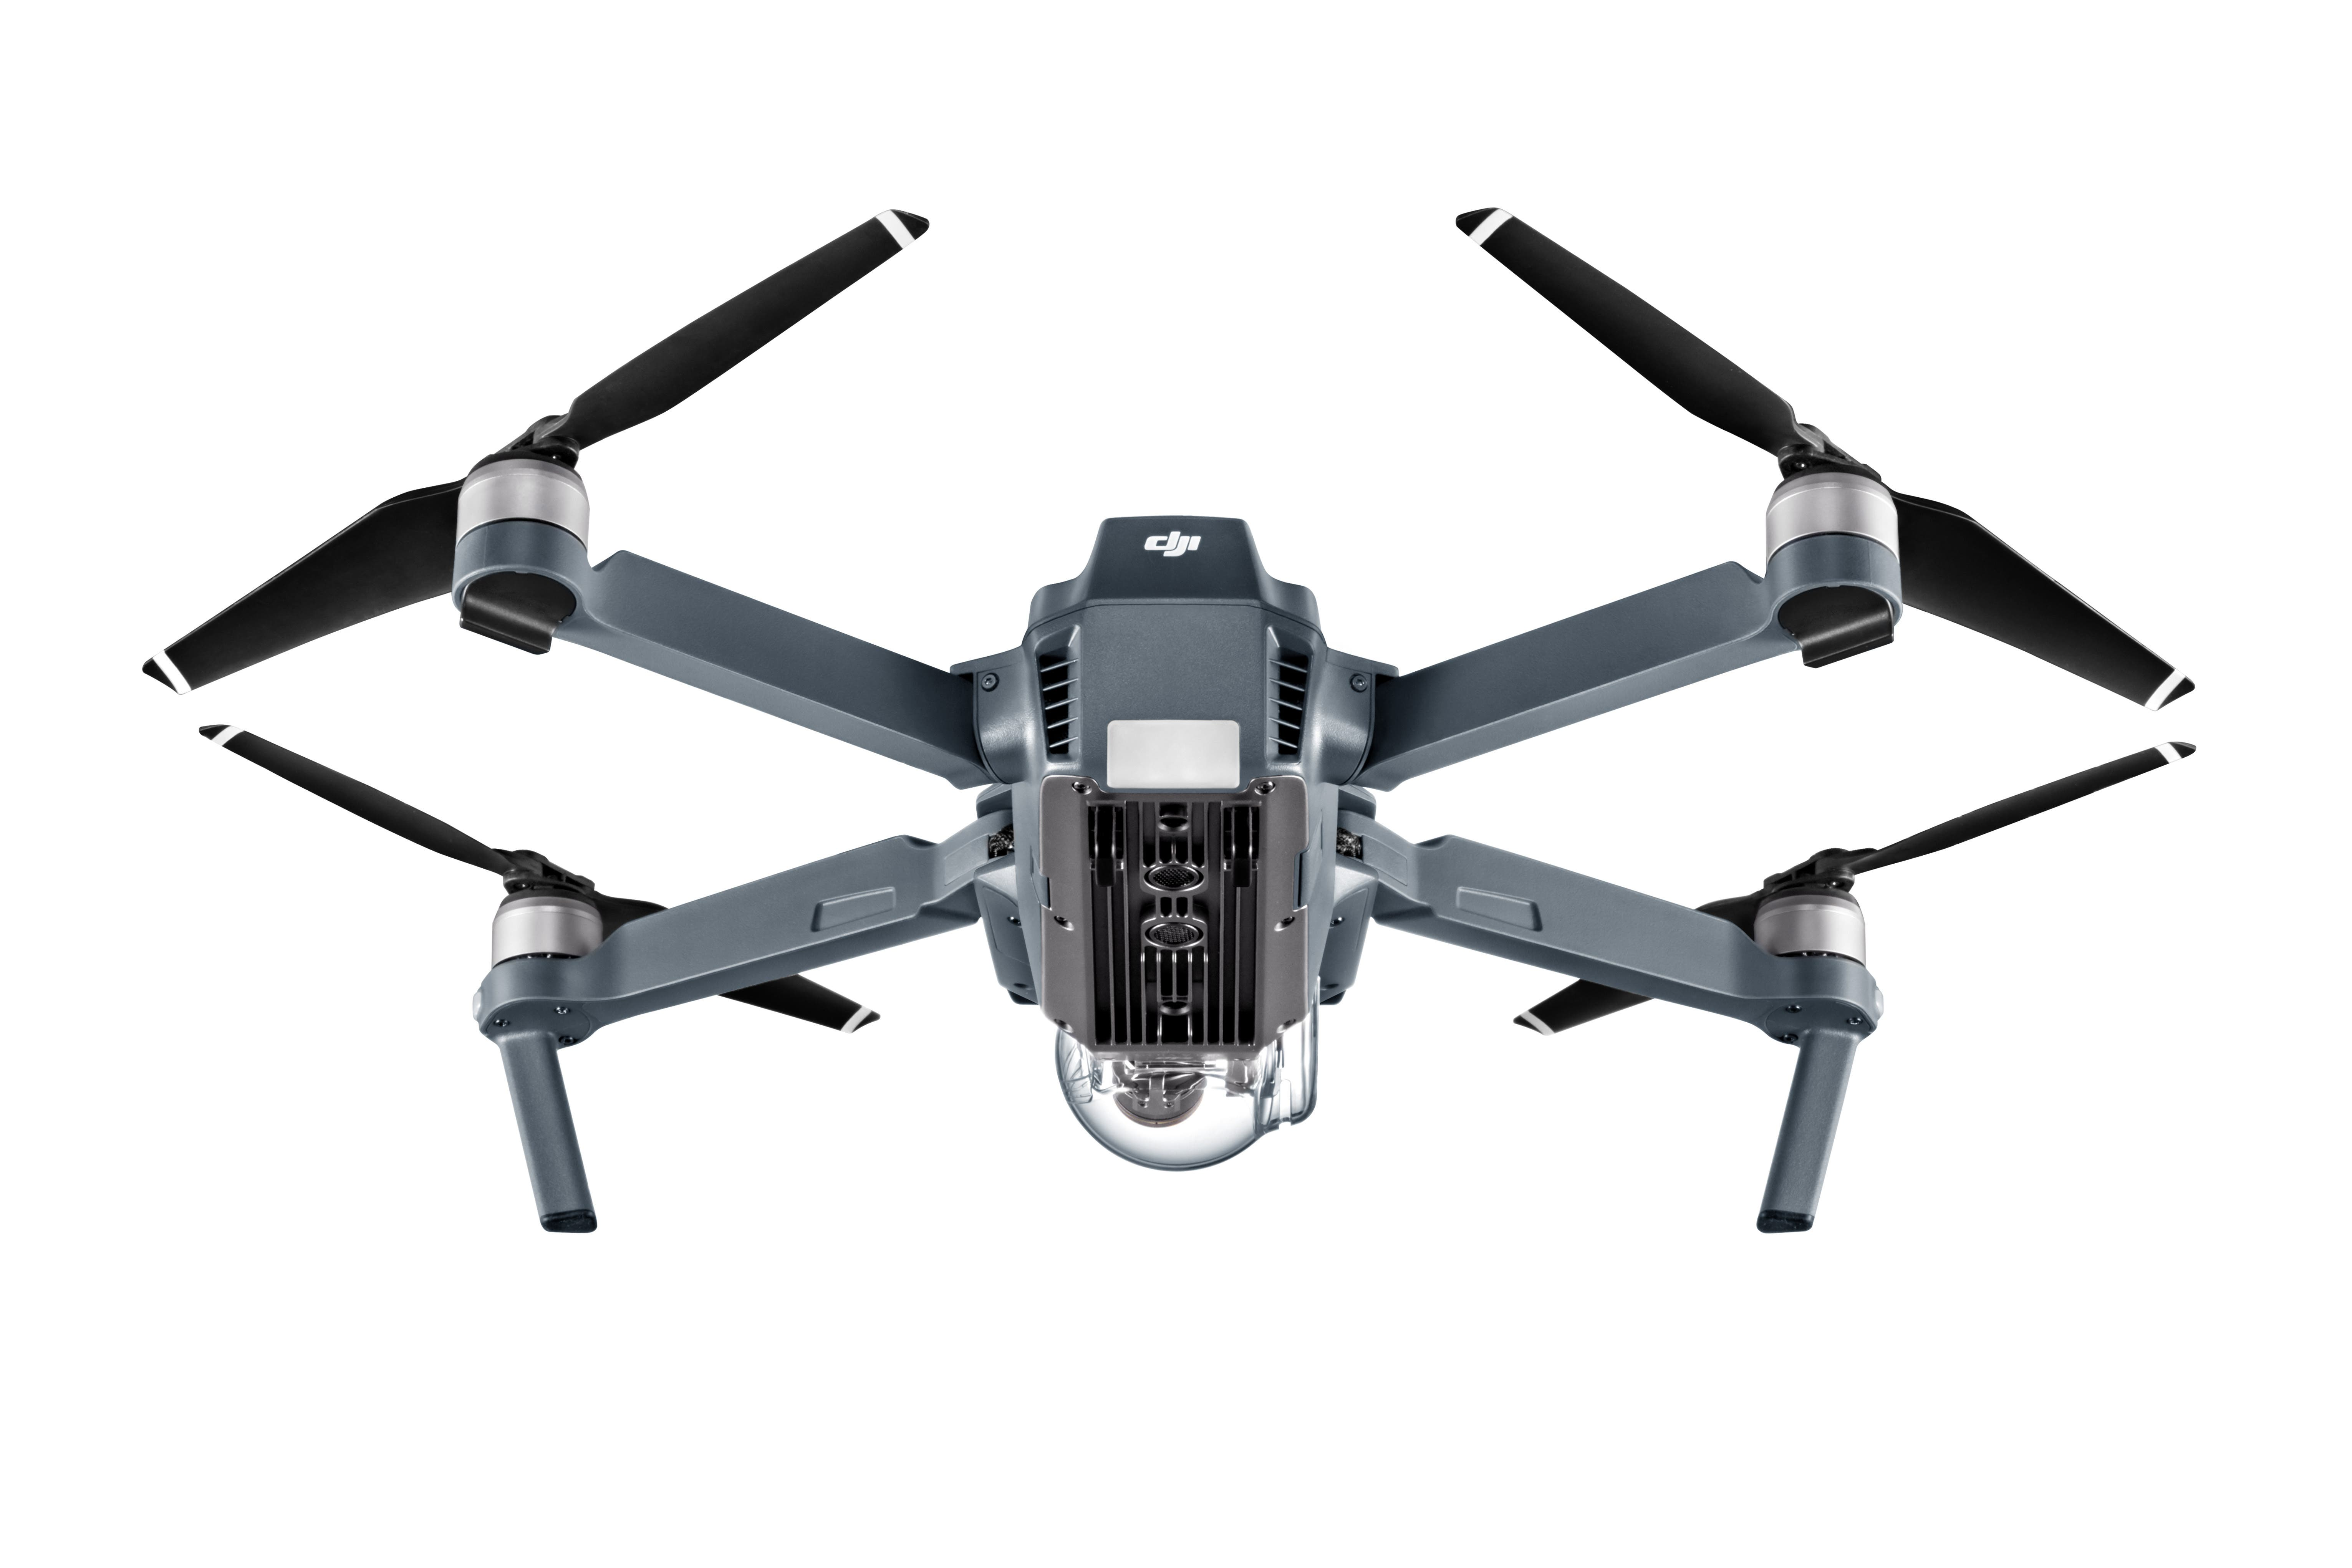 drones quadcopter with Dji Mavic Pro on Dji Mavic Pro moreover Fpv Gimbal For Zoom Camera likewise Most Expensive Drone World moreover Single Seat Helicopter Design By Igarashi Design additionally Advanced Multicopter Design.